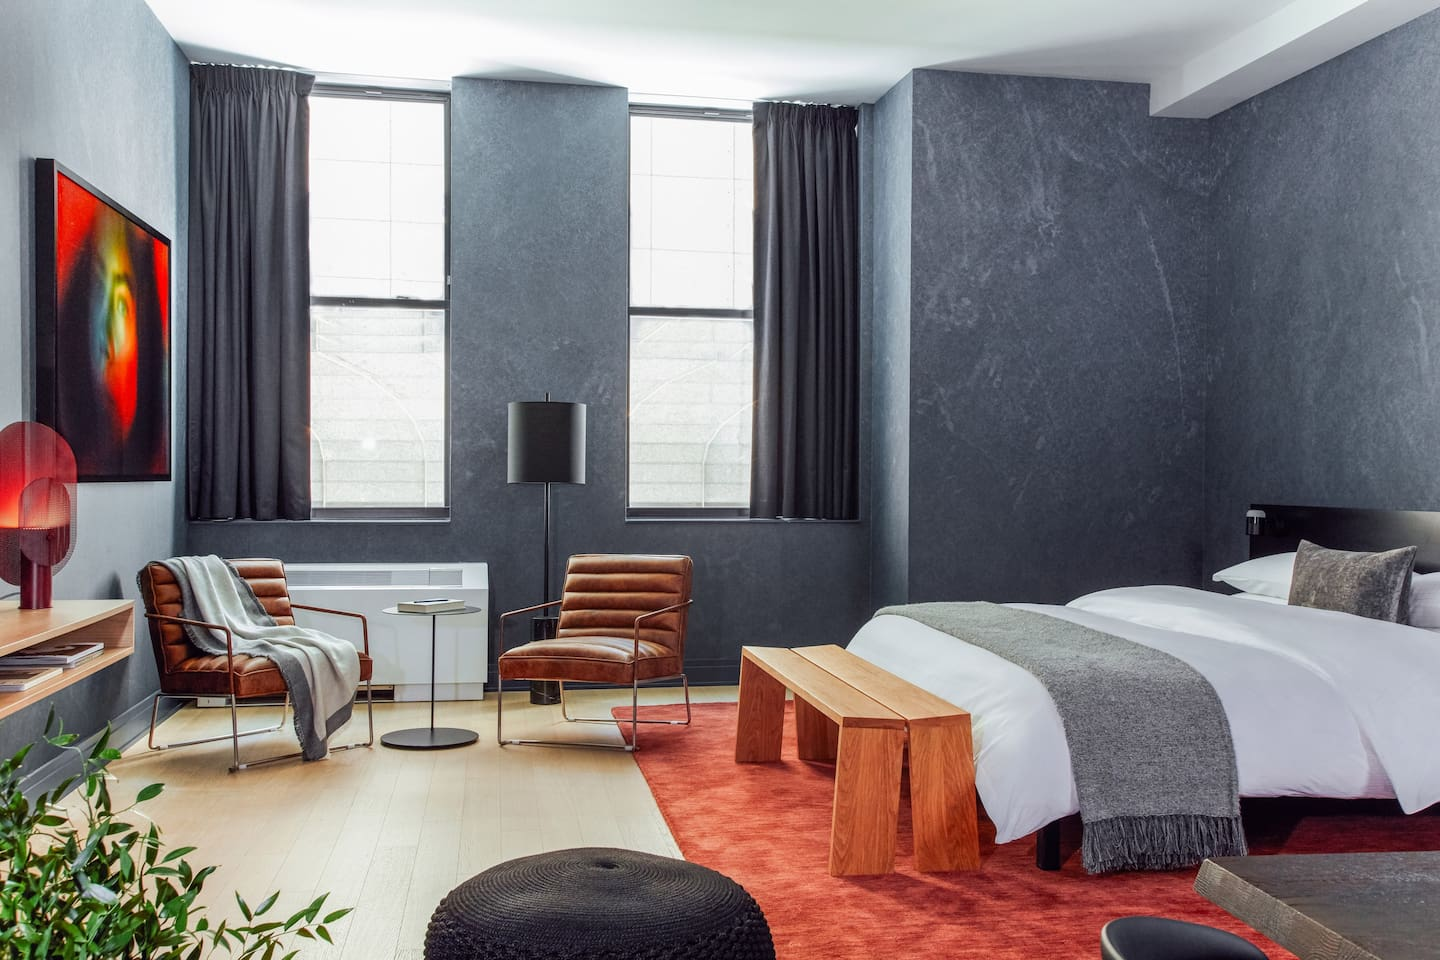 Starting at 700 square feet, our rooms are larger than most hotel rooms in NYC. Our units feature cable TV plus streaming for Netflix, Hulu, and more. The photos are of a model  unit, and the exact floor plan may differ once assigned.